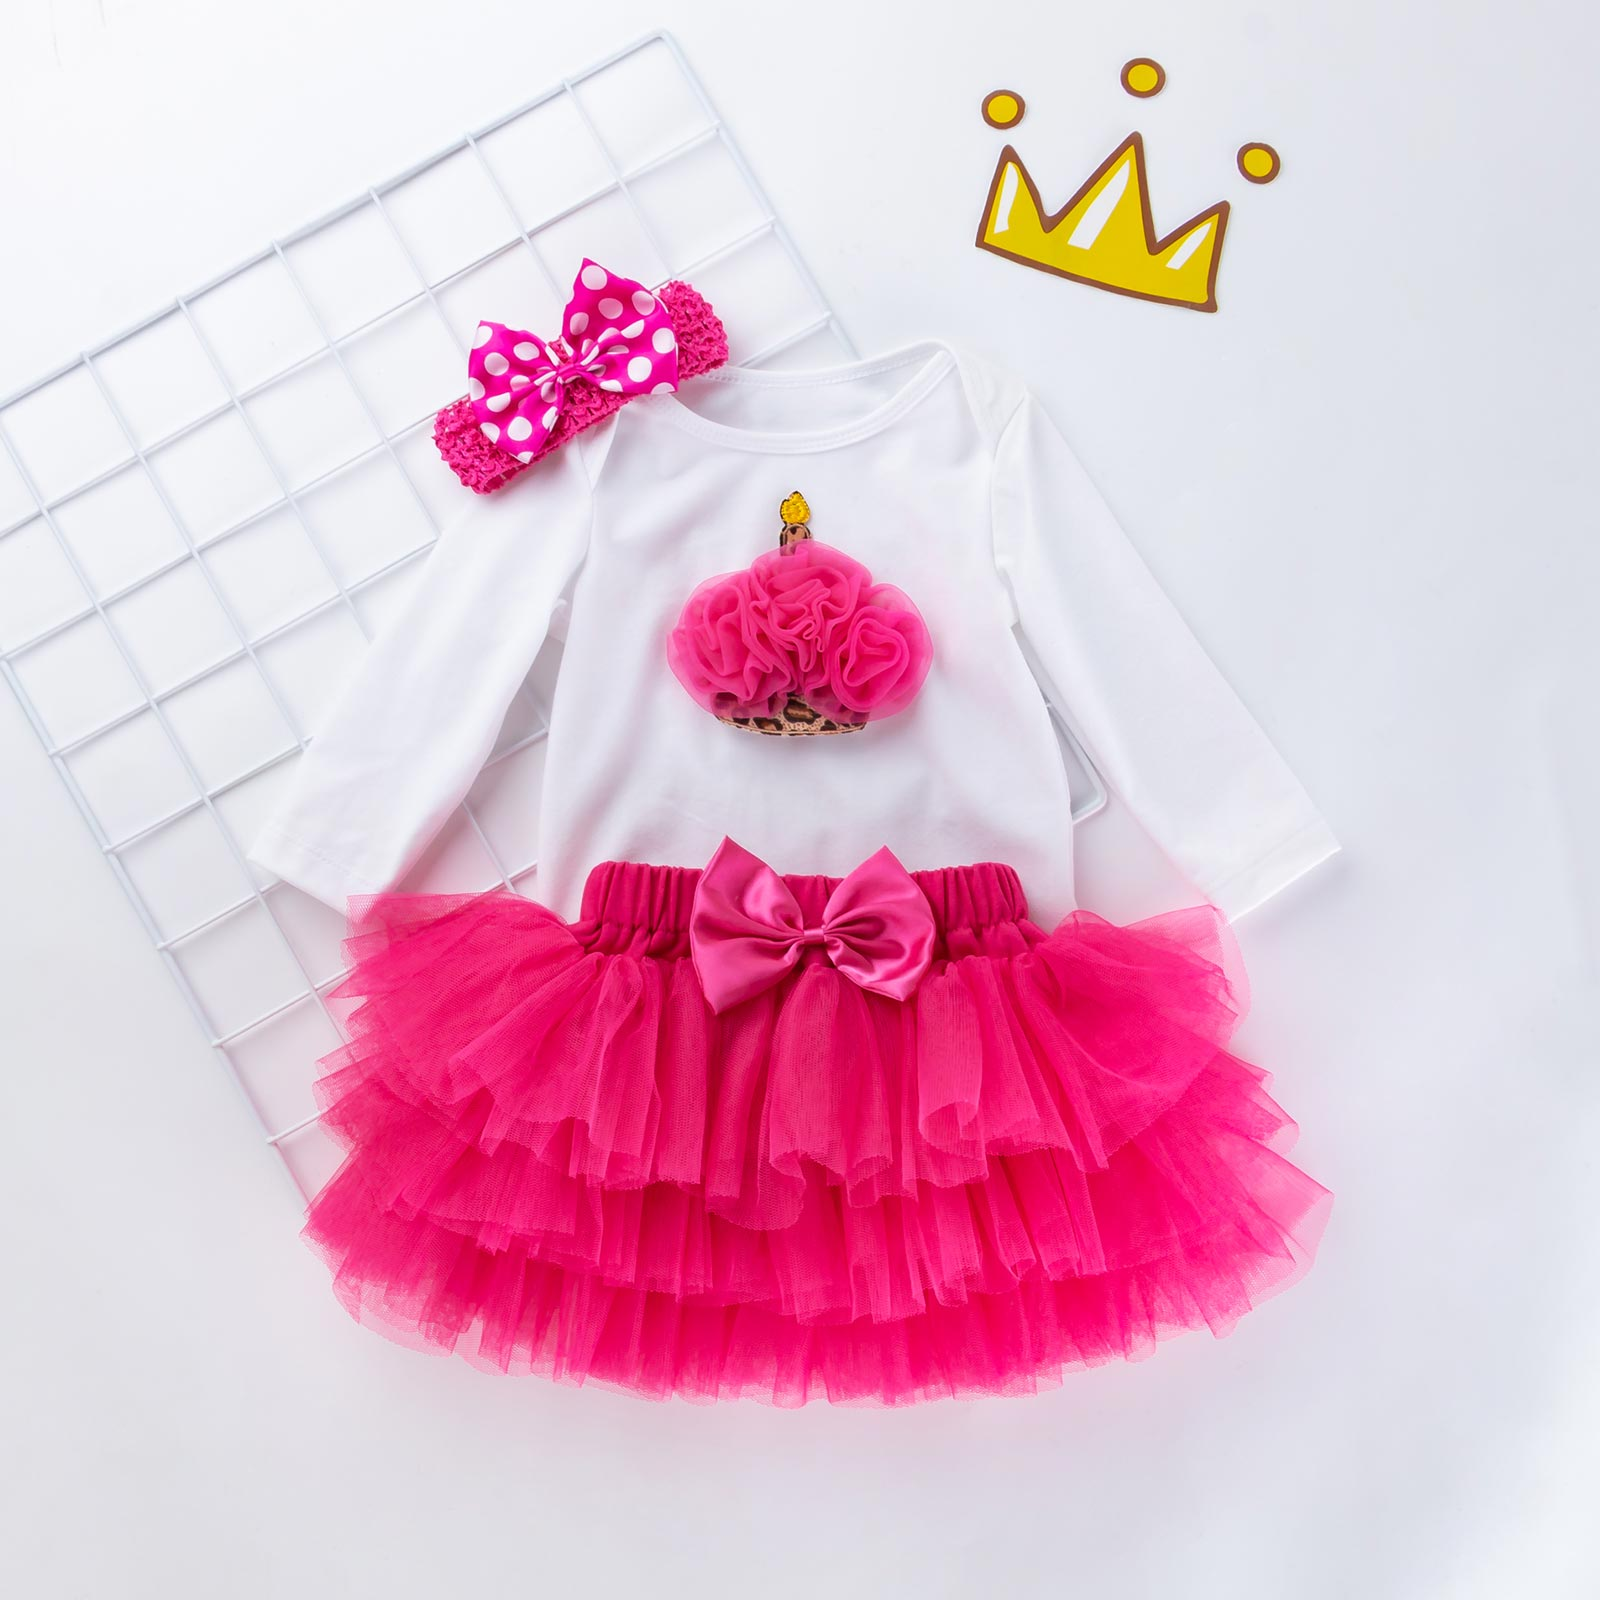 Newborn Infant Outfits Details About Baby Girls 1st Birthday Romper Skirt Outfits Newborn Infant Dress Clothes Set